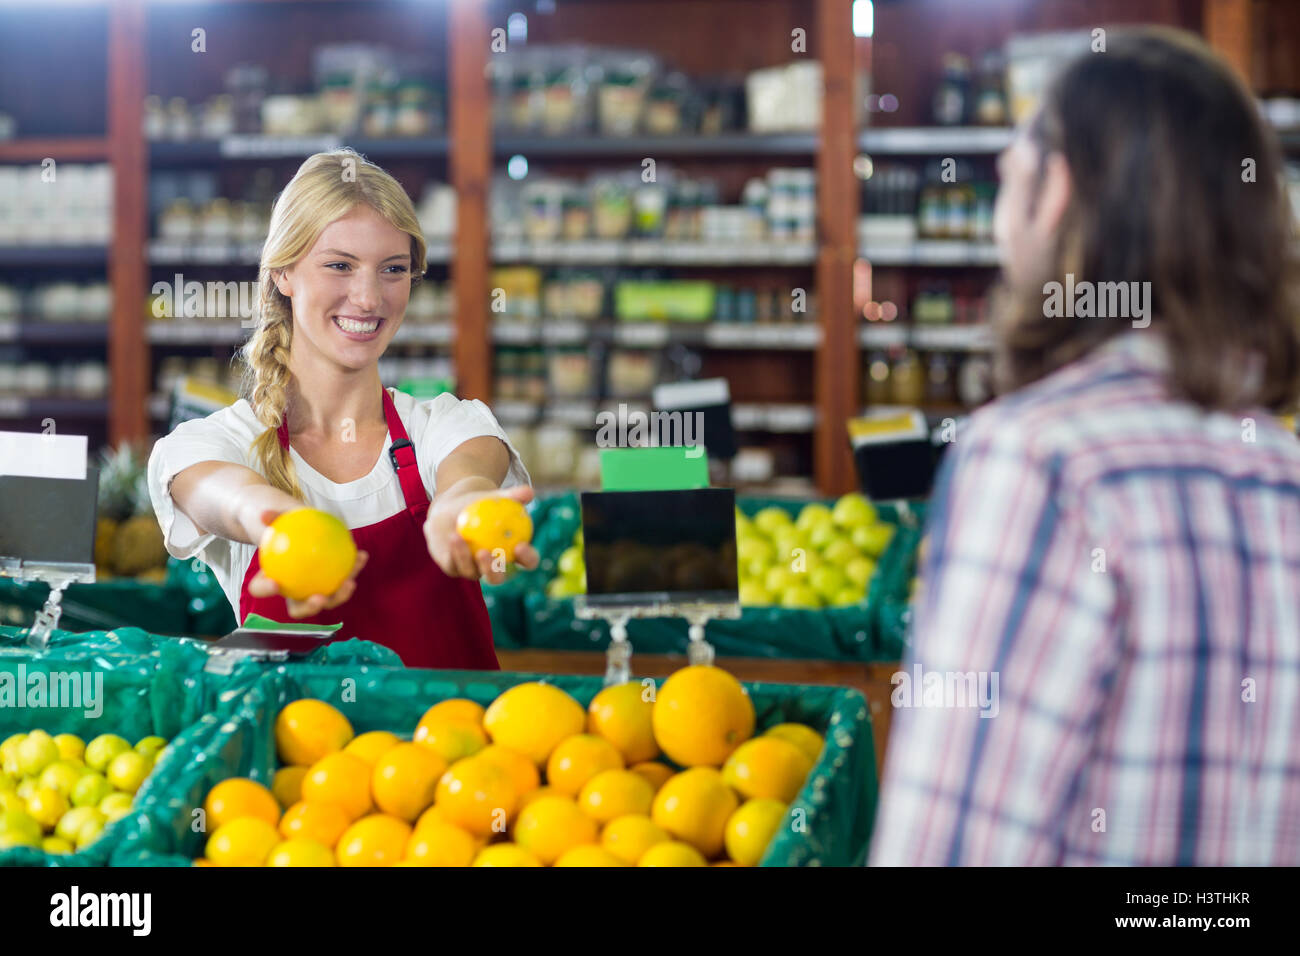 Smiling staff assisting a man with grocery shopping - Stock Image